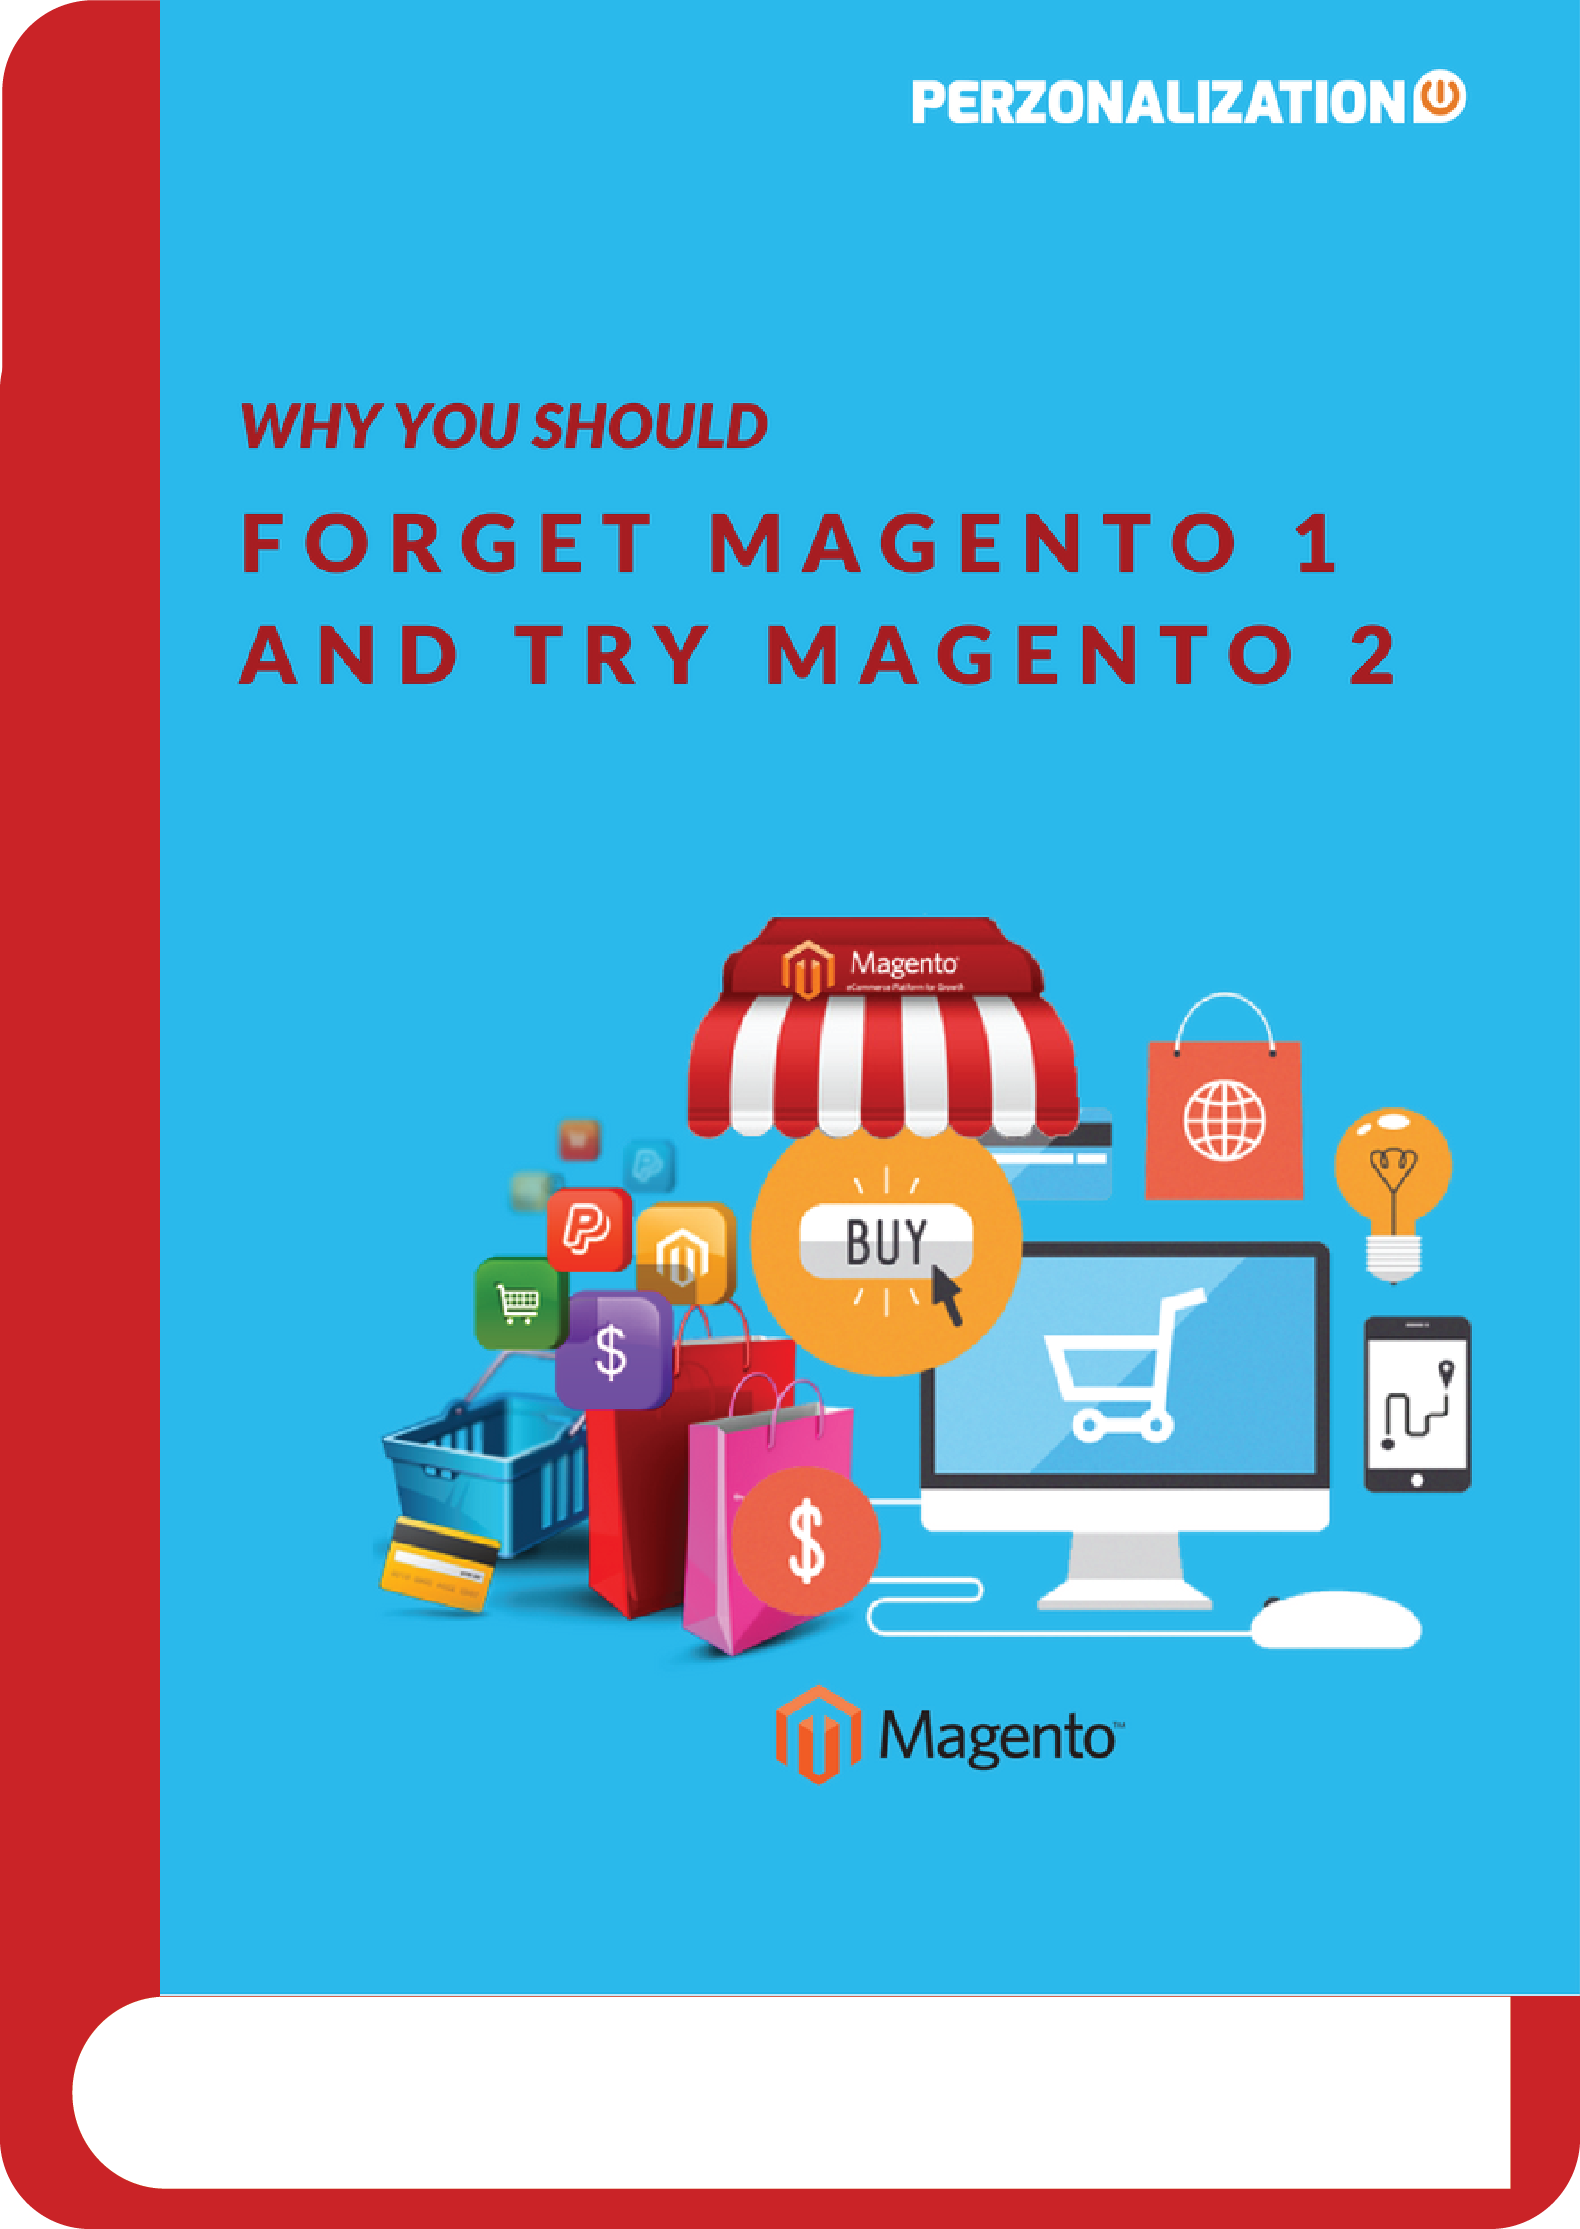 With substantial improvements in performance and usability, Magento 2 has proved to the world that it's worth a try. Upgrade to Magento 2 today.